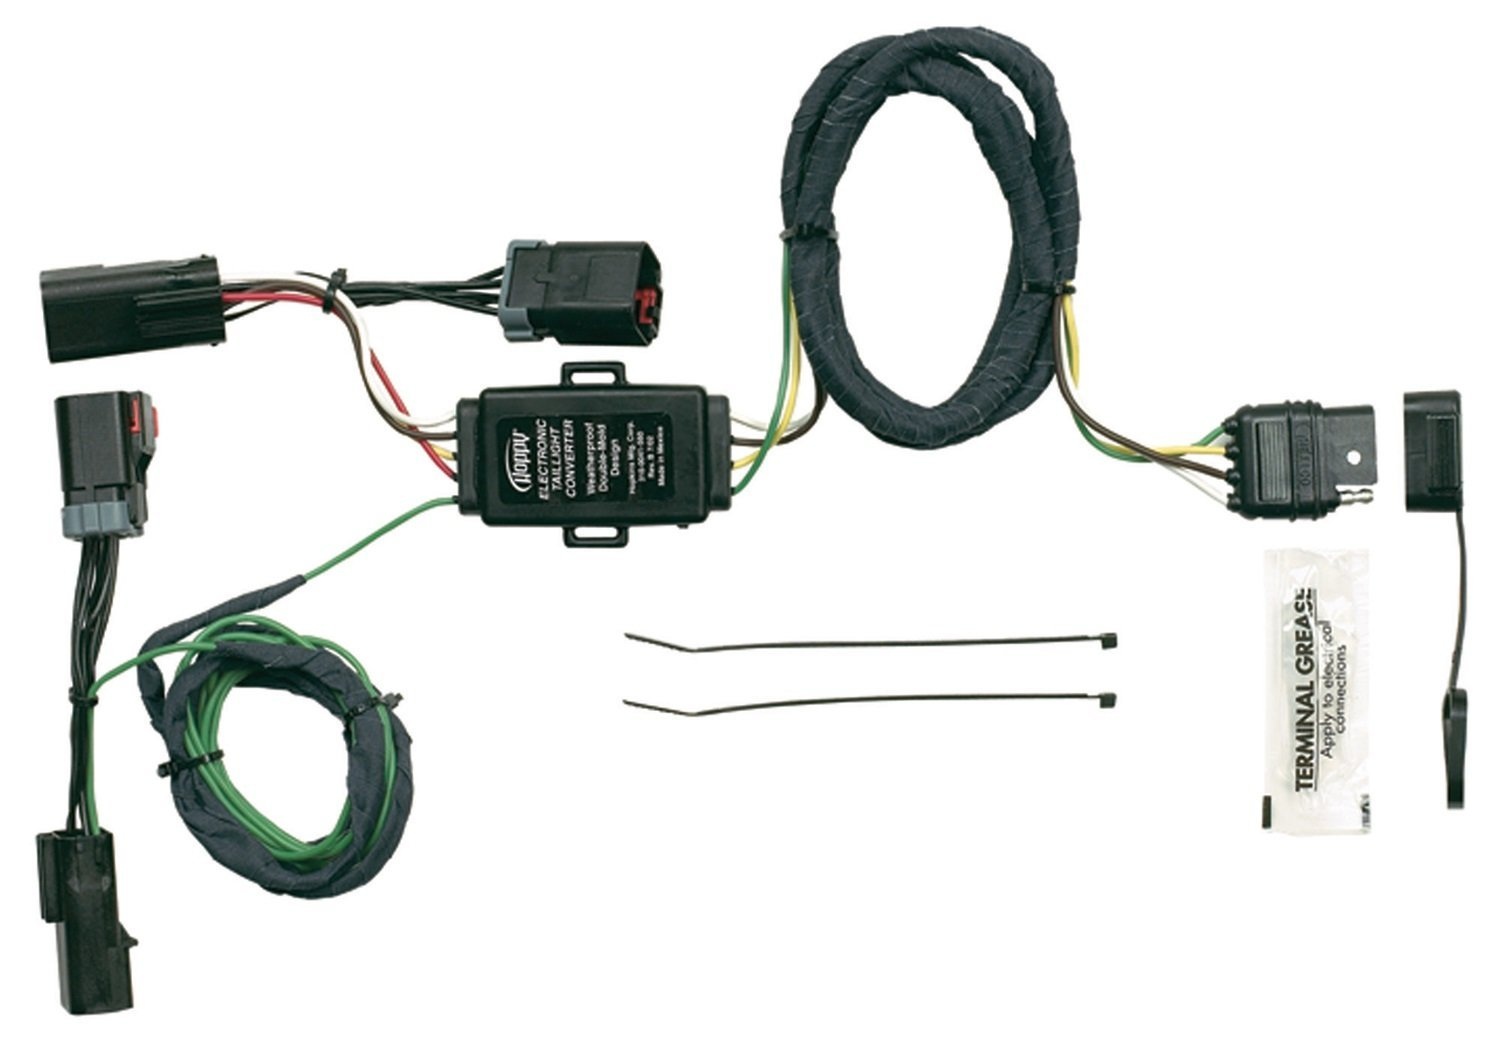 Hopkins 42215 Plug In Simple Vehicle Wiring Kit T Connectors Allow Harness You To Connect Your Trailers System Into Vehicles By